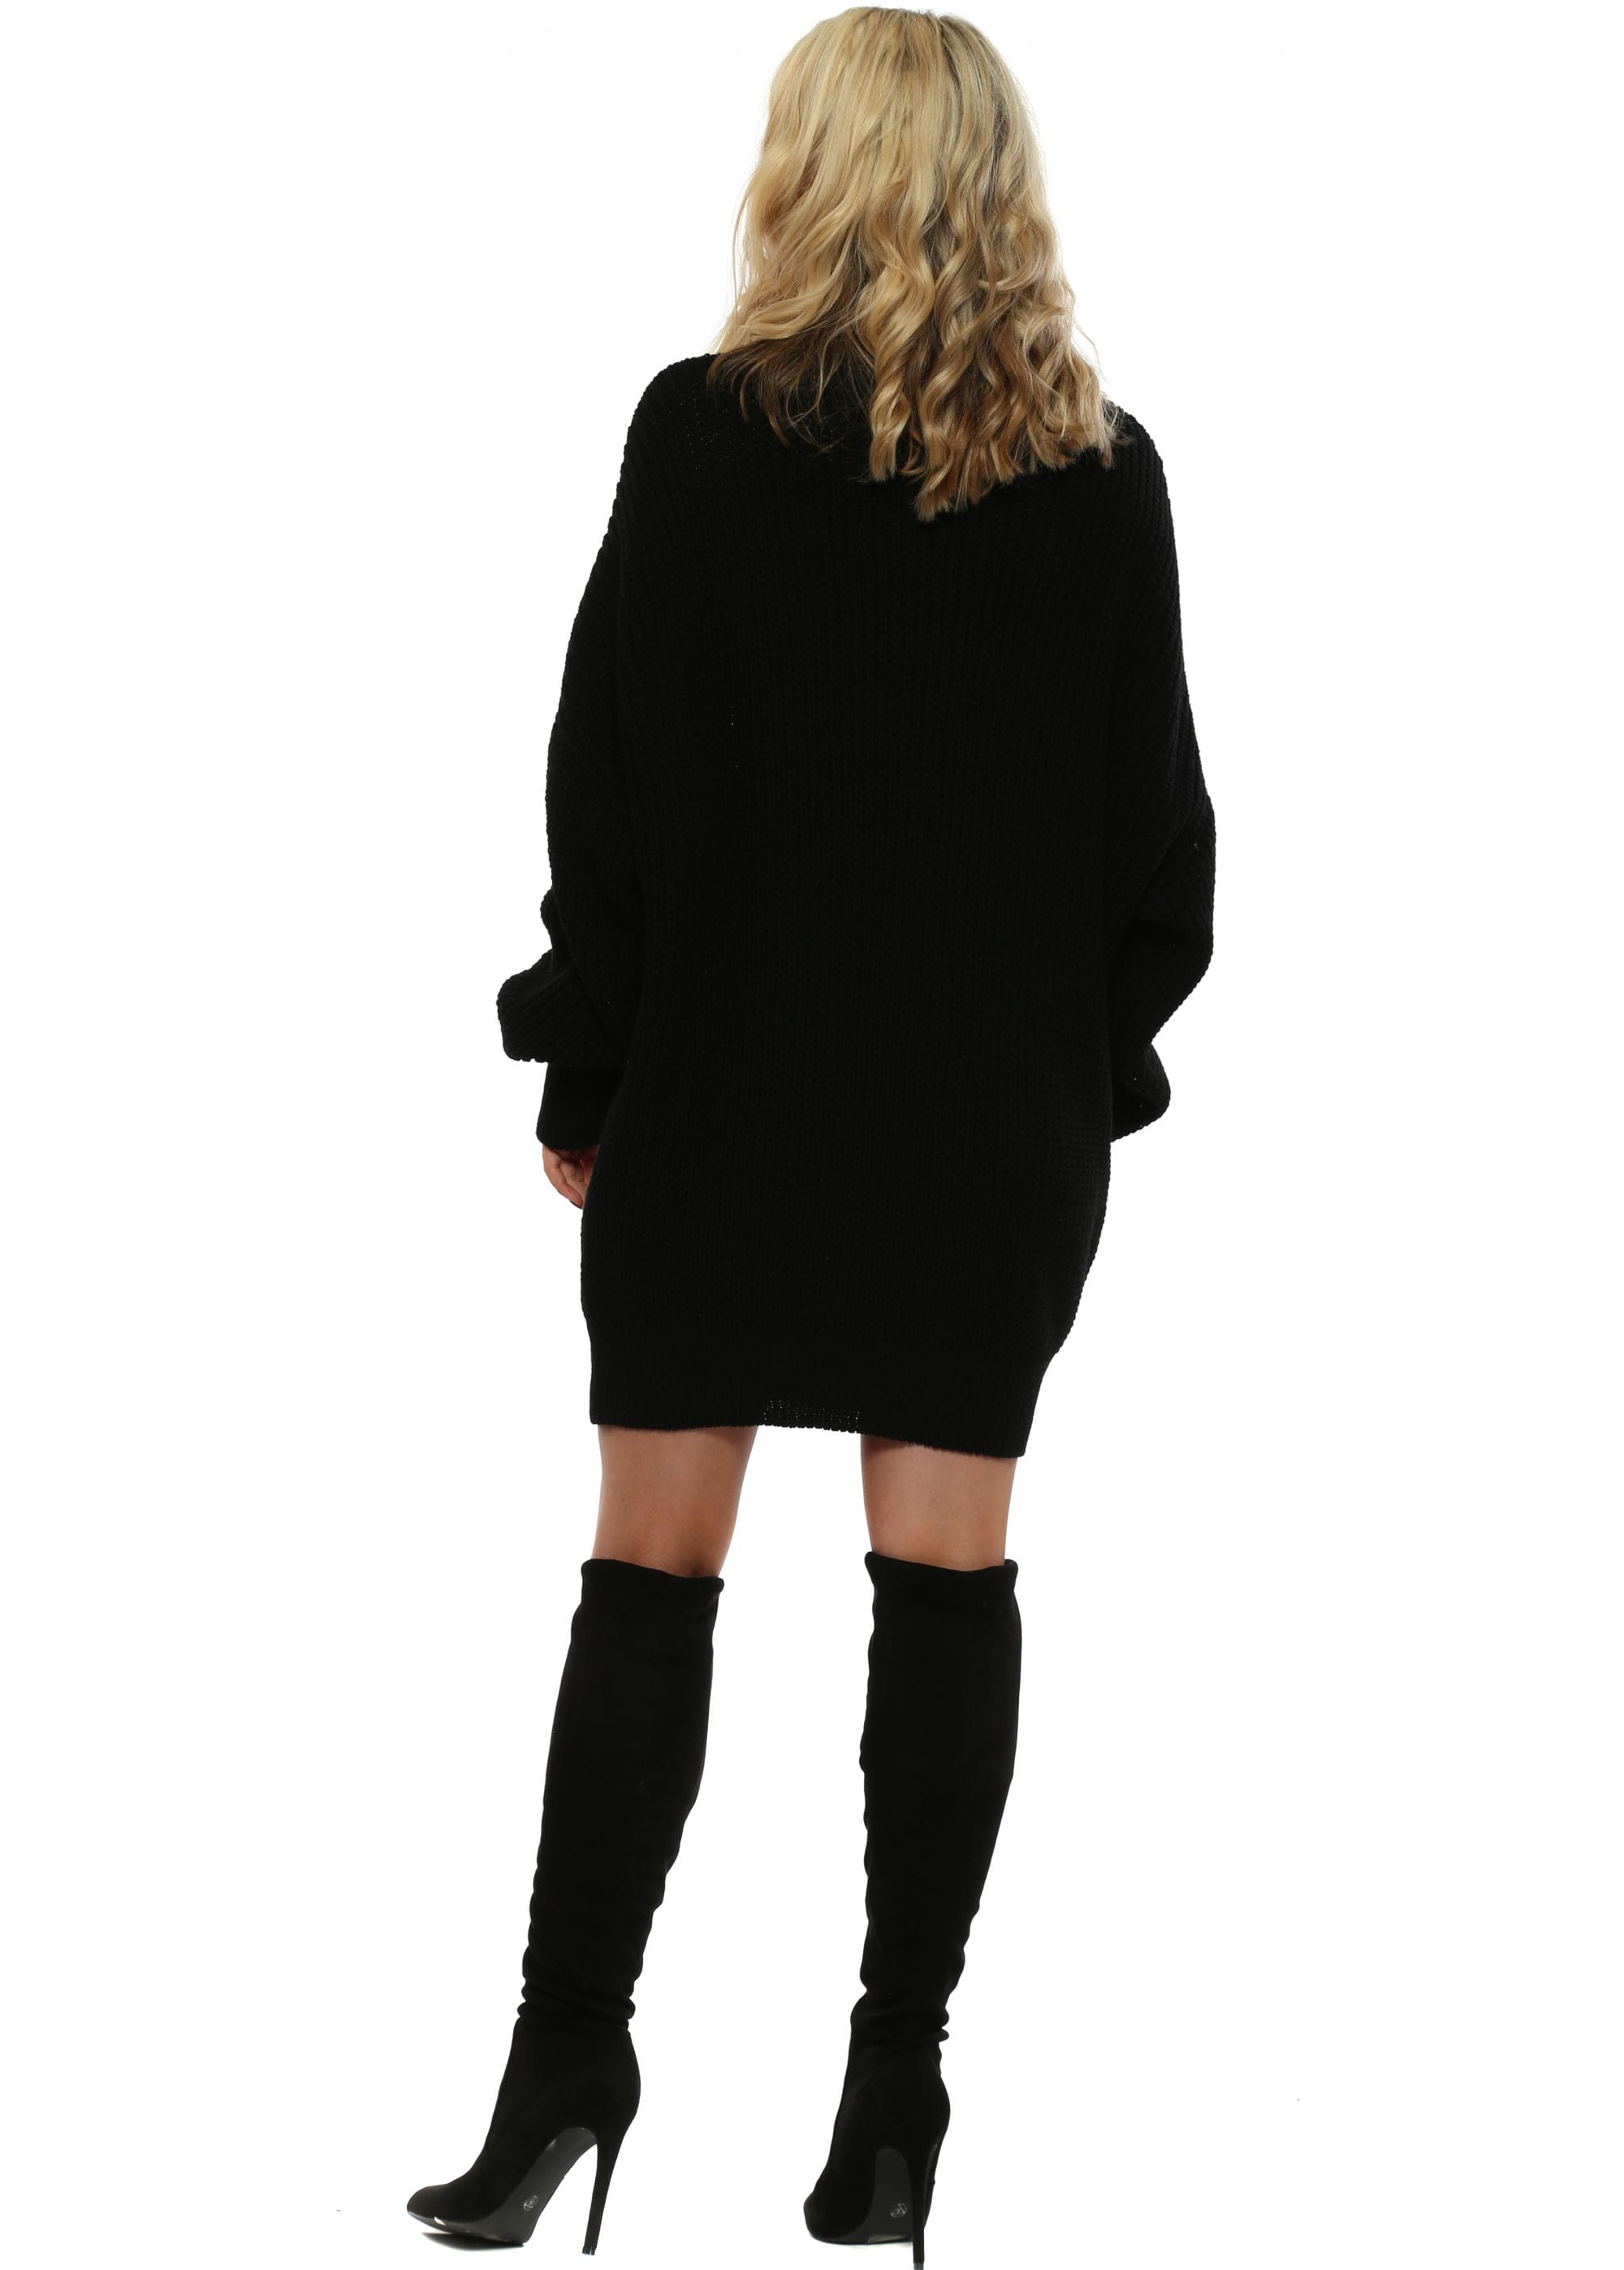 ad4ef2e2cf5 Made In Italy Black Oversized Cowl Neck Jumper